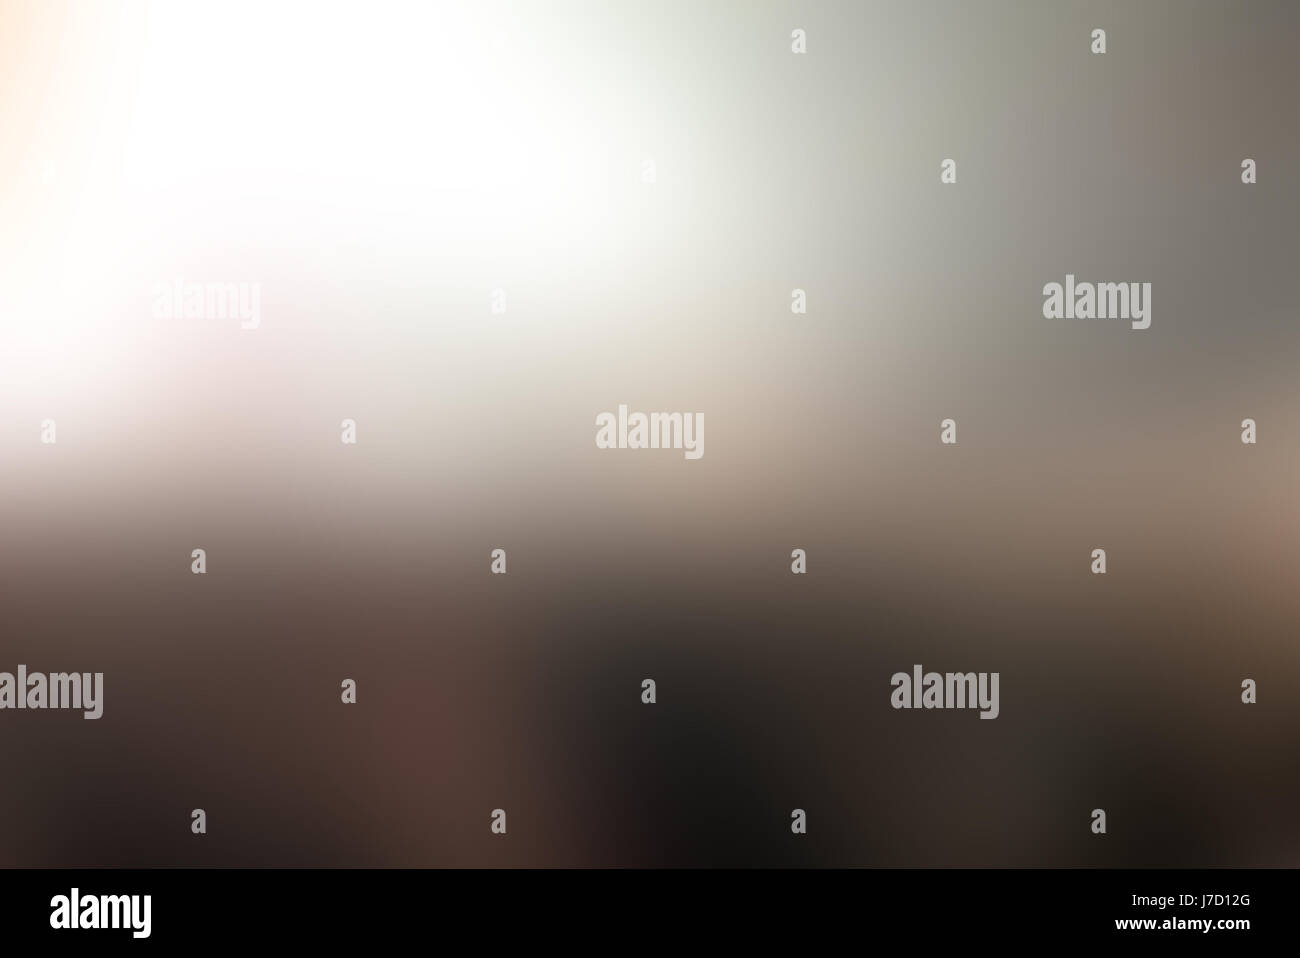 abstract blurred background white and black - Stock Image